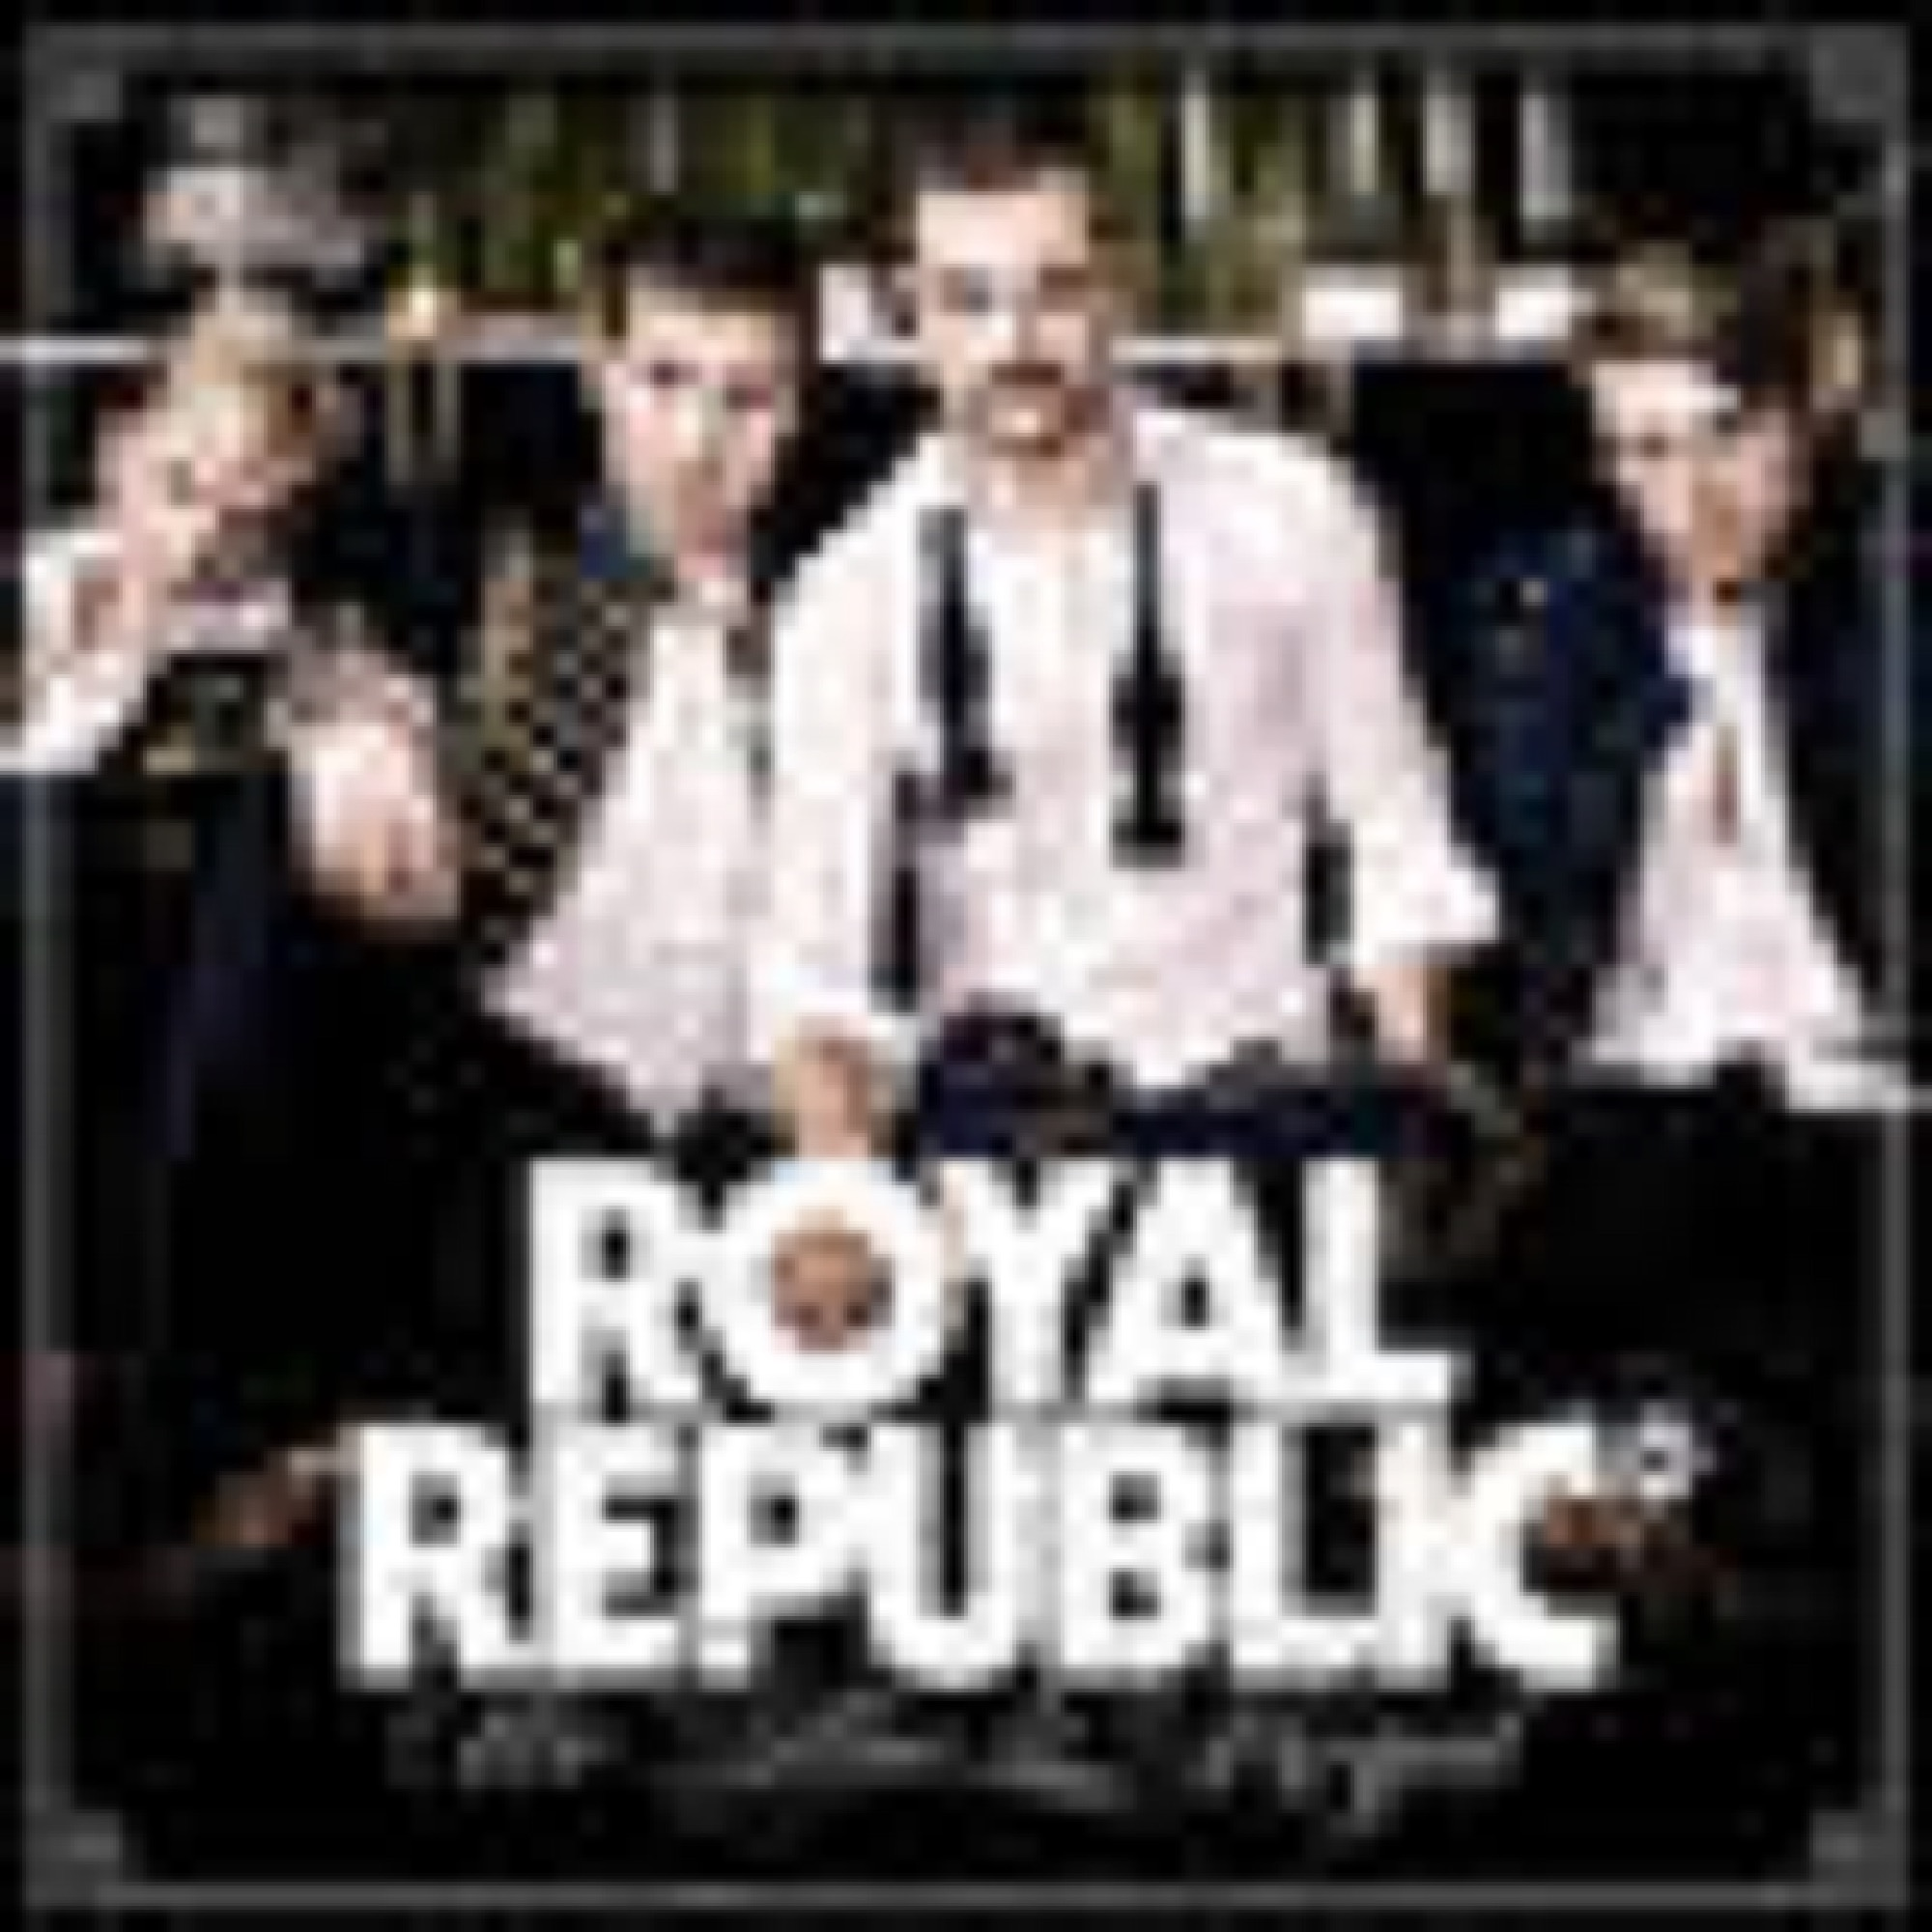 Royal Republic / Bonnier Amigo Music / Niclas Brunzell